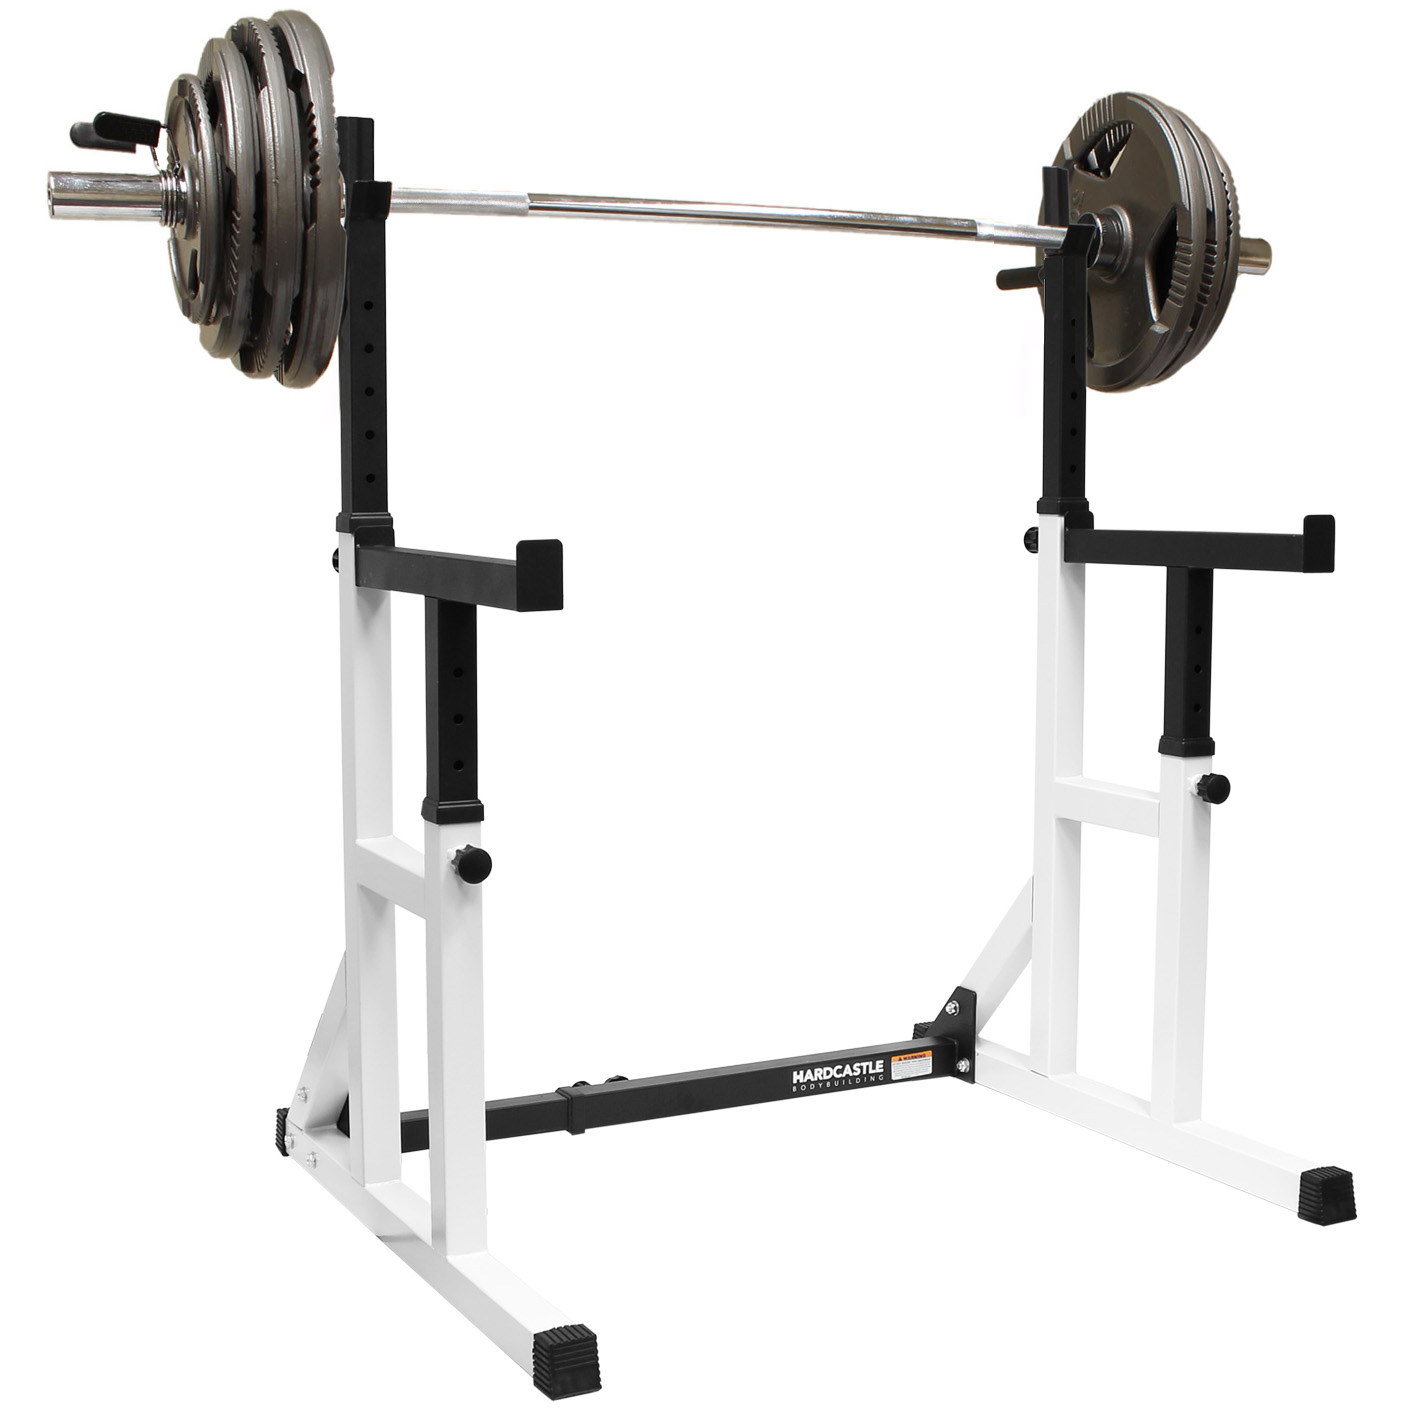 Adjustable weight bench heavy duty squat frame rack weights lifting cage kit Weight bench and weights